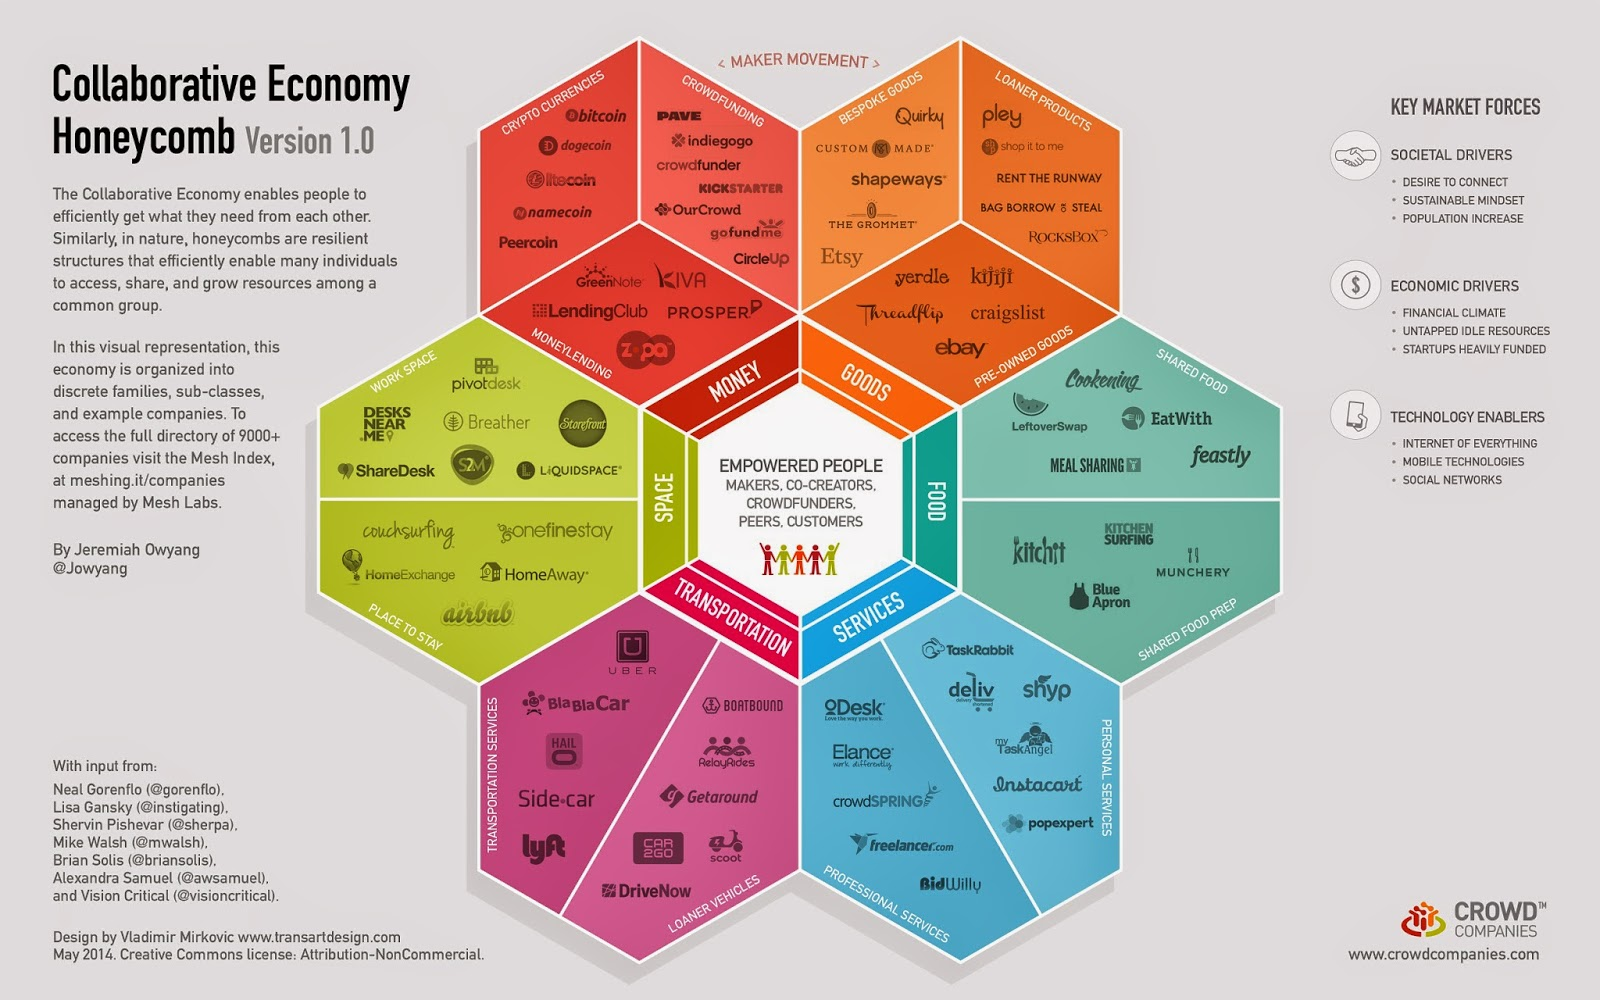 Money, goods, services, food, space and transportation in the collaborative economy